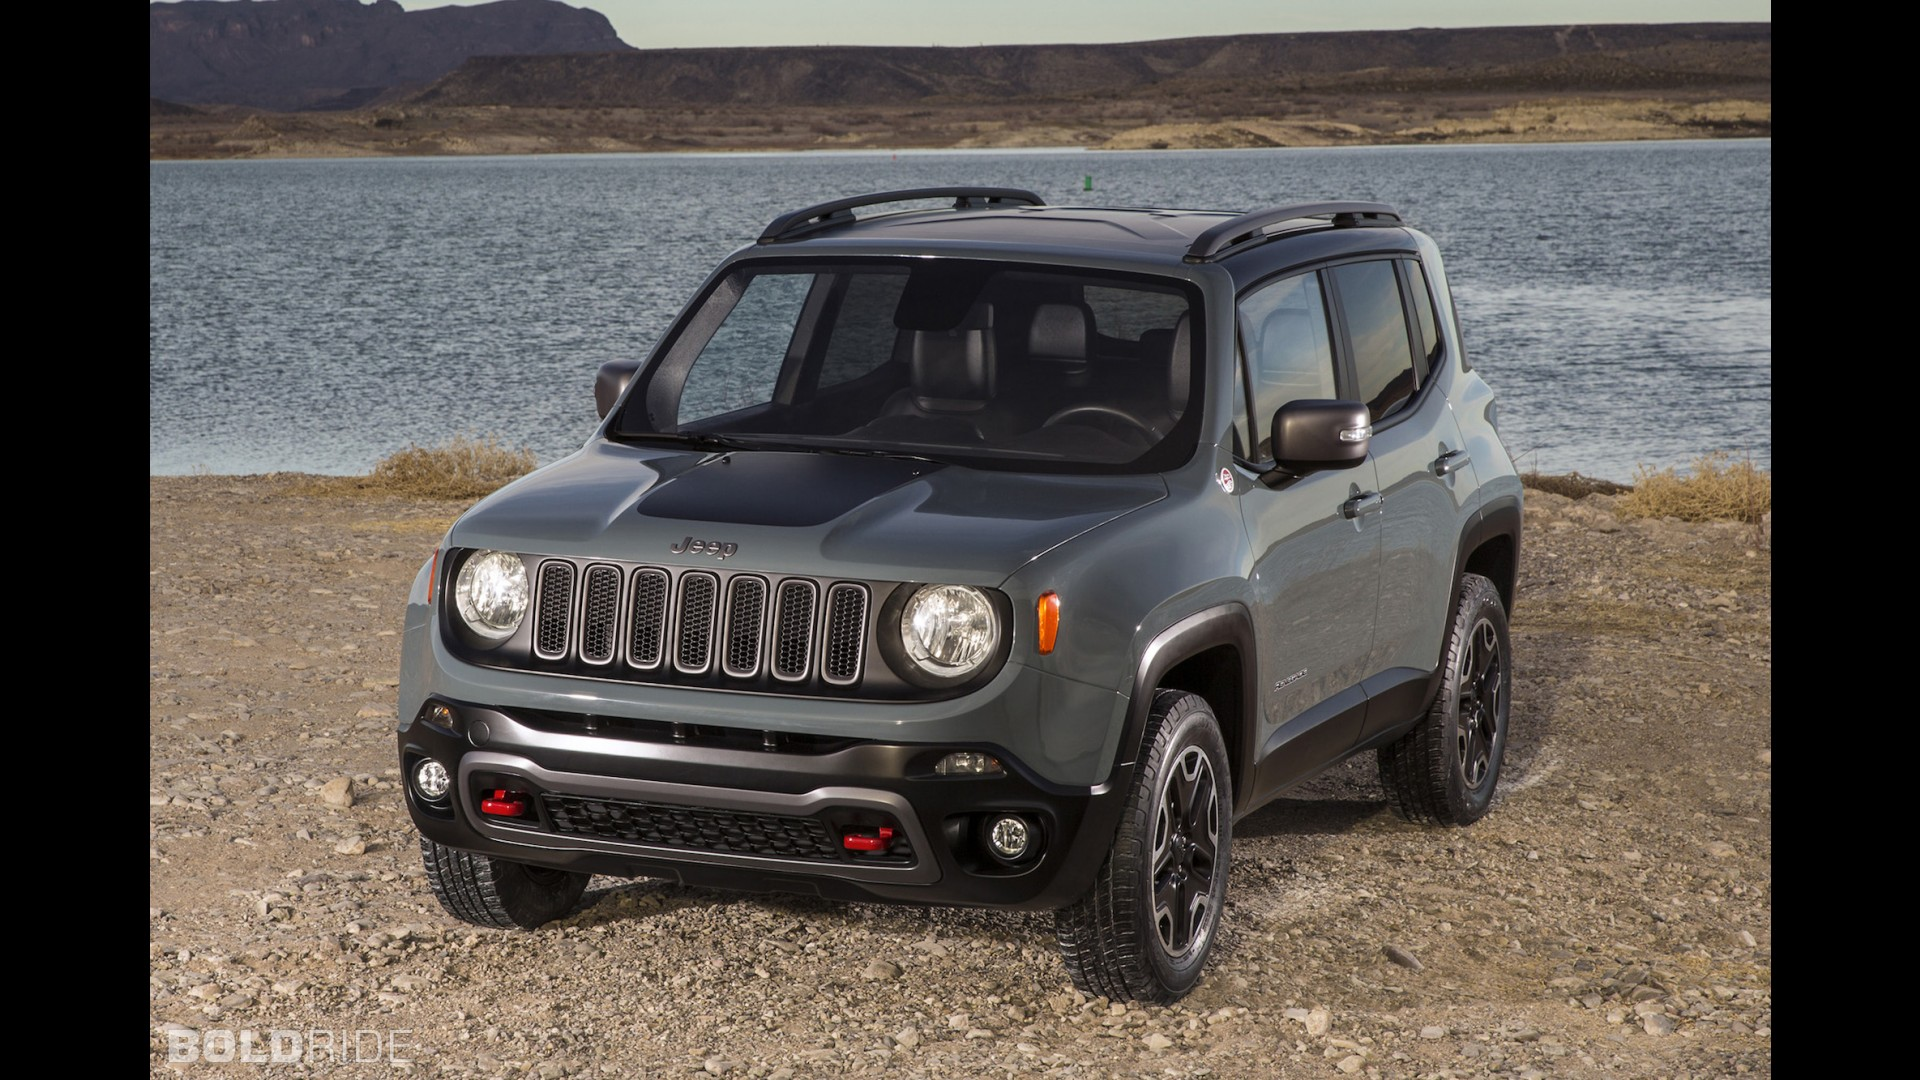 ram sale jeep renegade for corwin dealers cars in chrysler at used img new and dodge